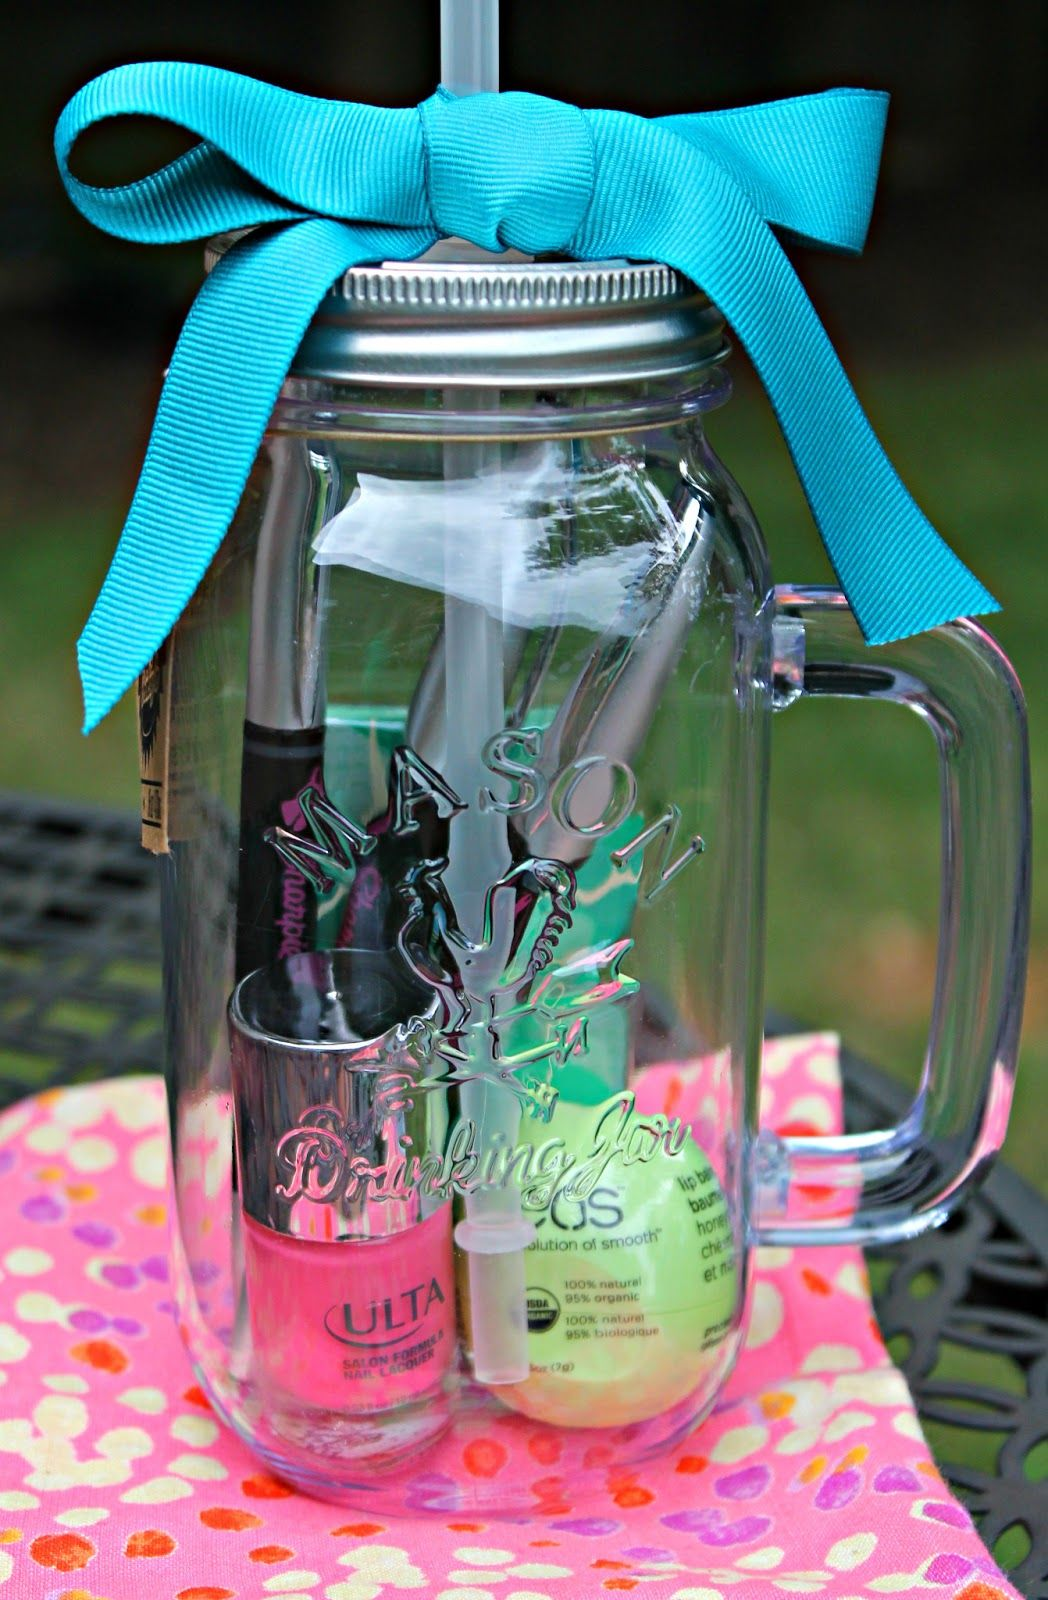 Girls Weekend Favors  Jar Gifts, Cute Gifts, Homemade Gifts-1504